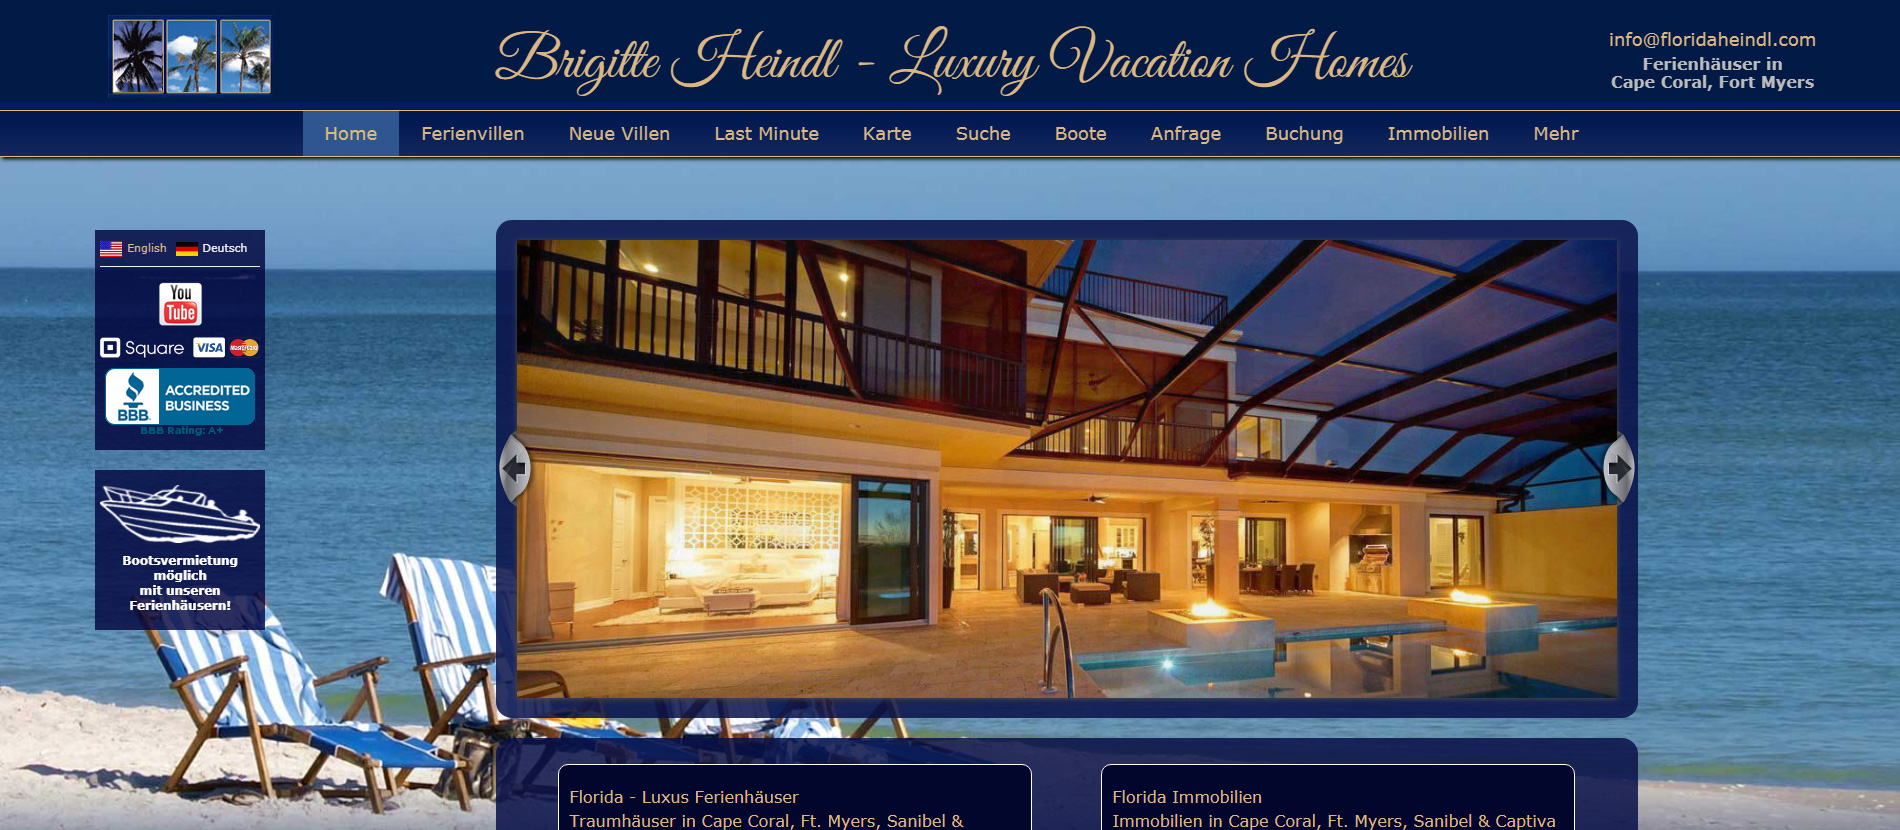 Brigitte Heindl - Luxury Vacation Homes